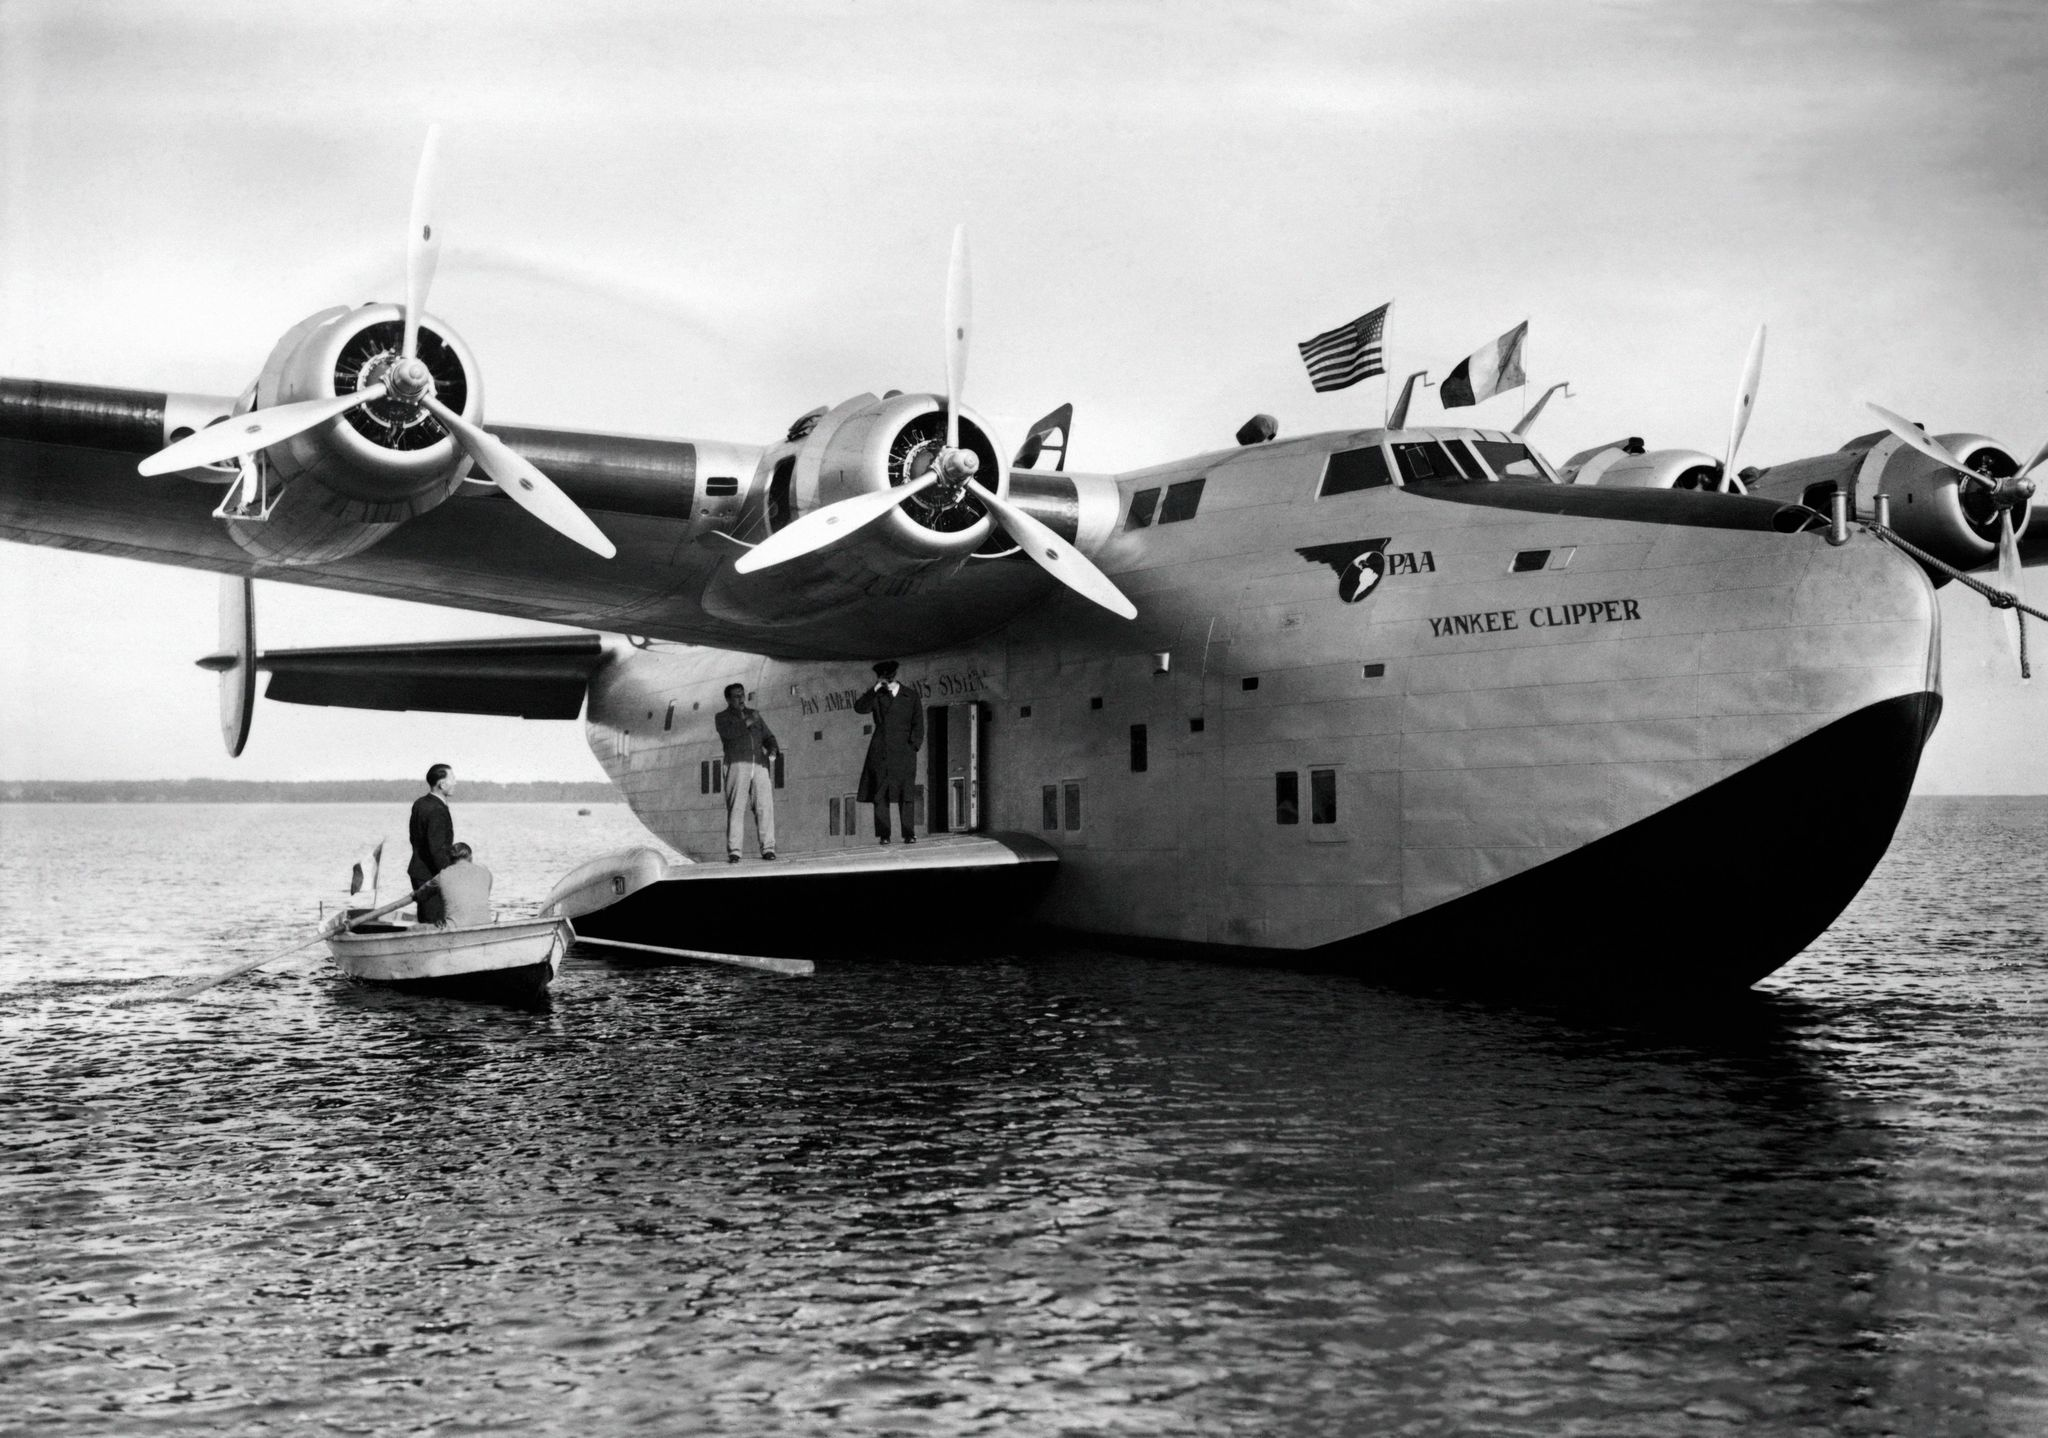 New York to Europe by Clipper: A Prelude to an Historic Flight